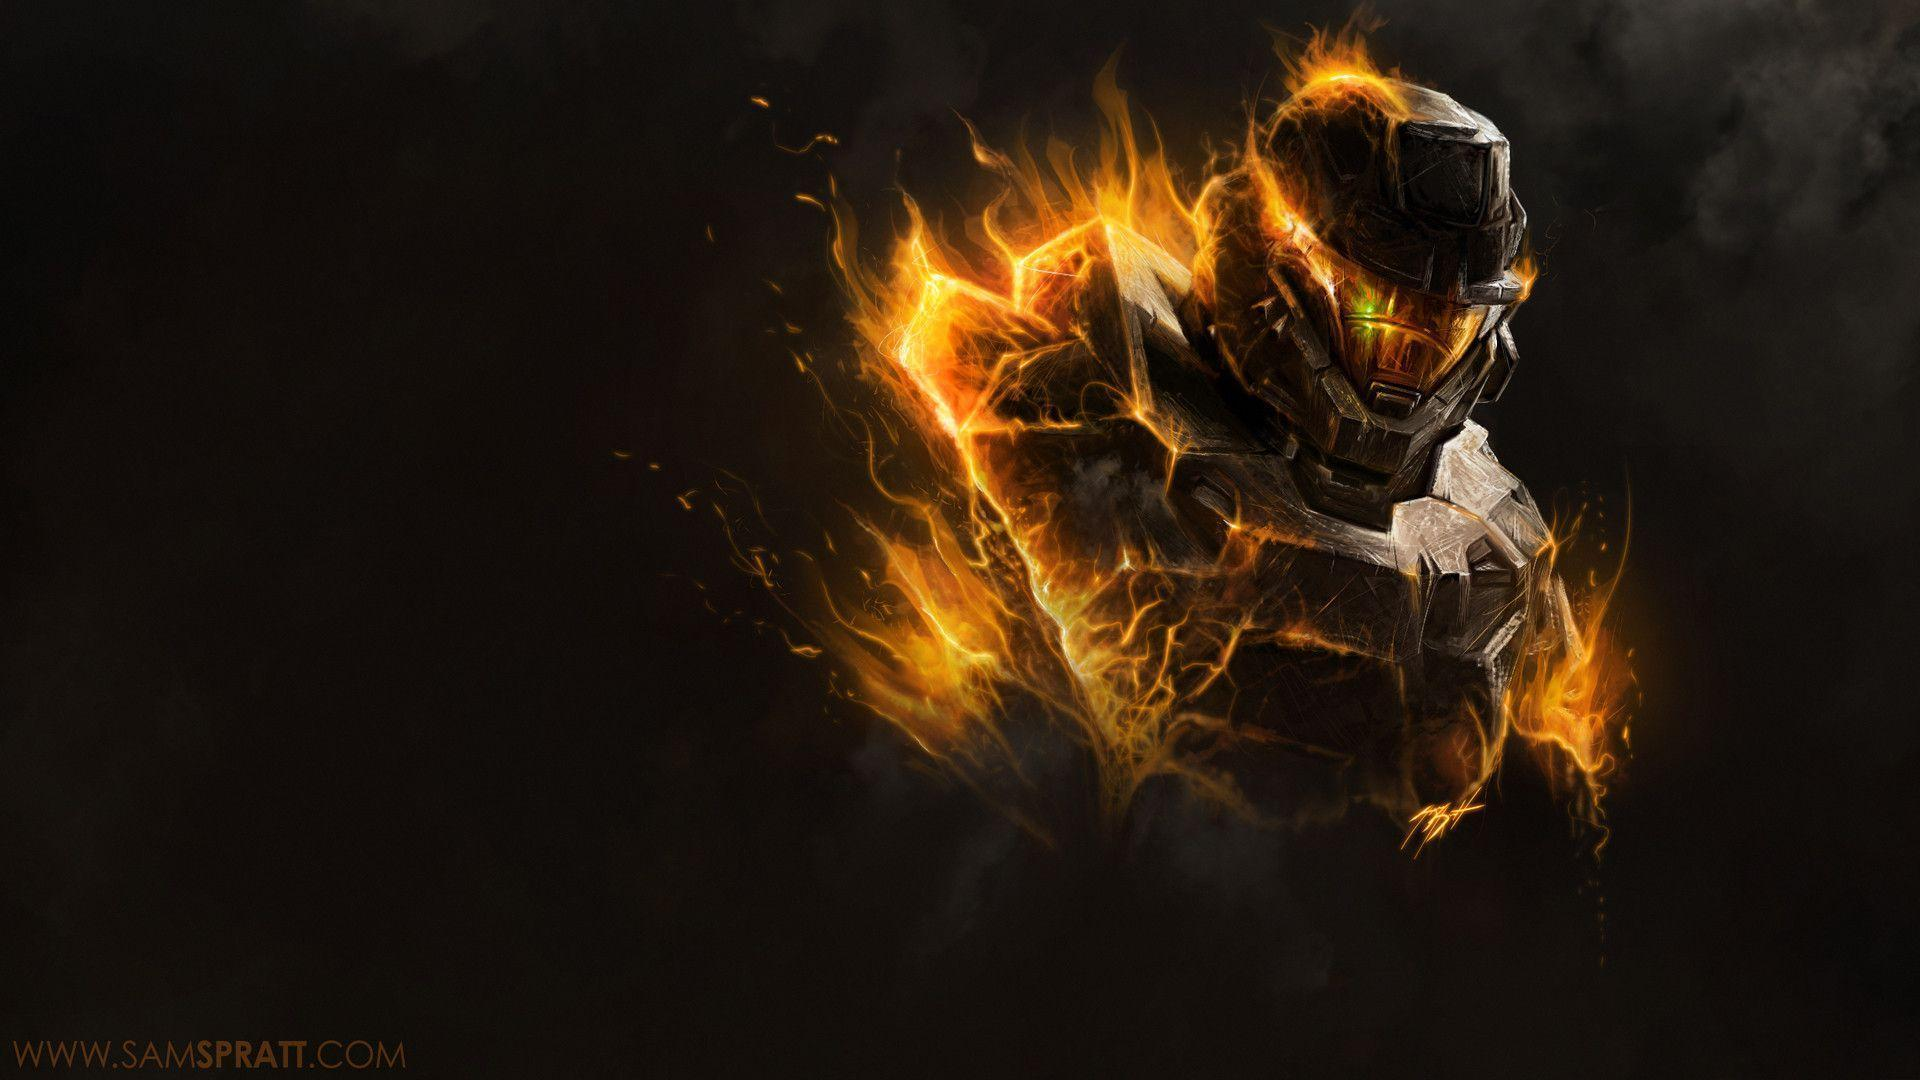 Funny Halo Wallpapers 1920x1080